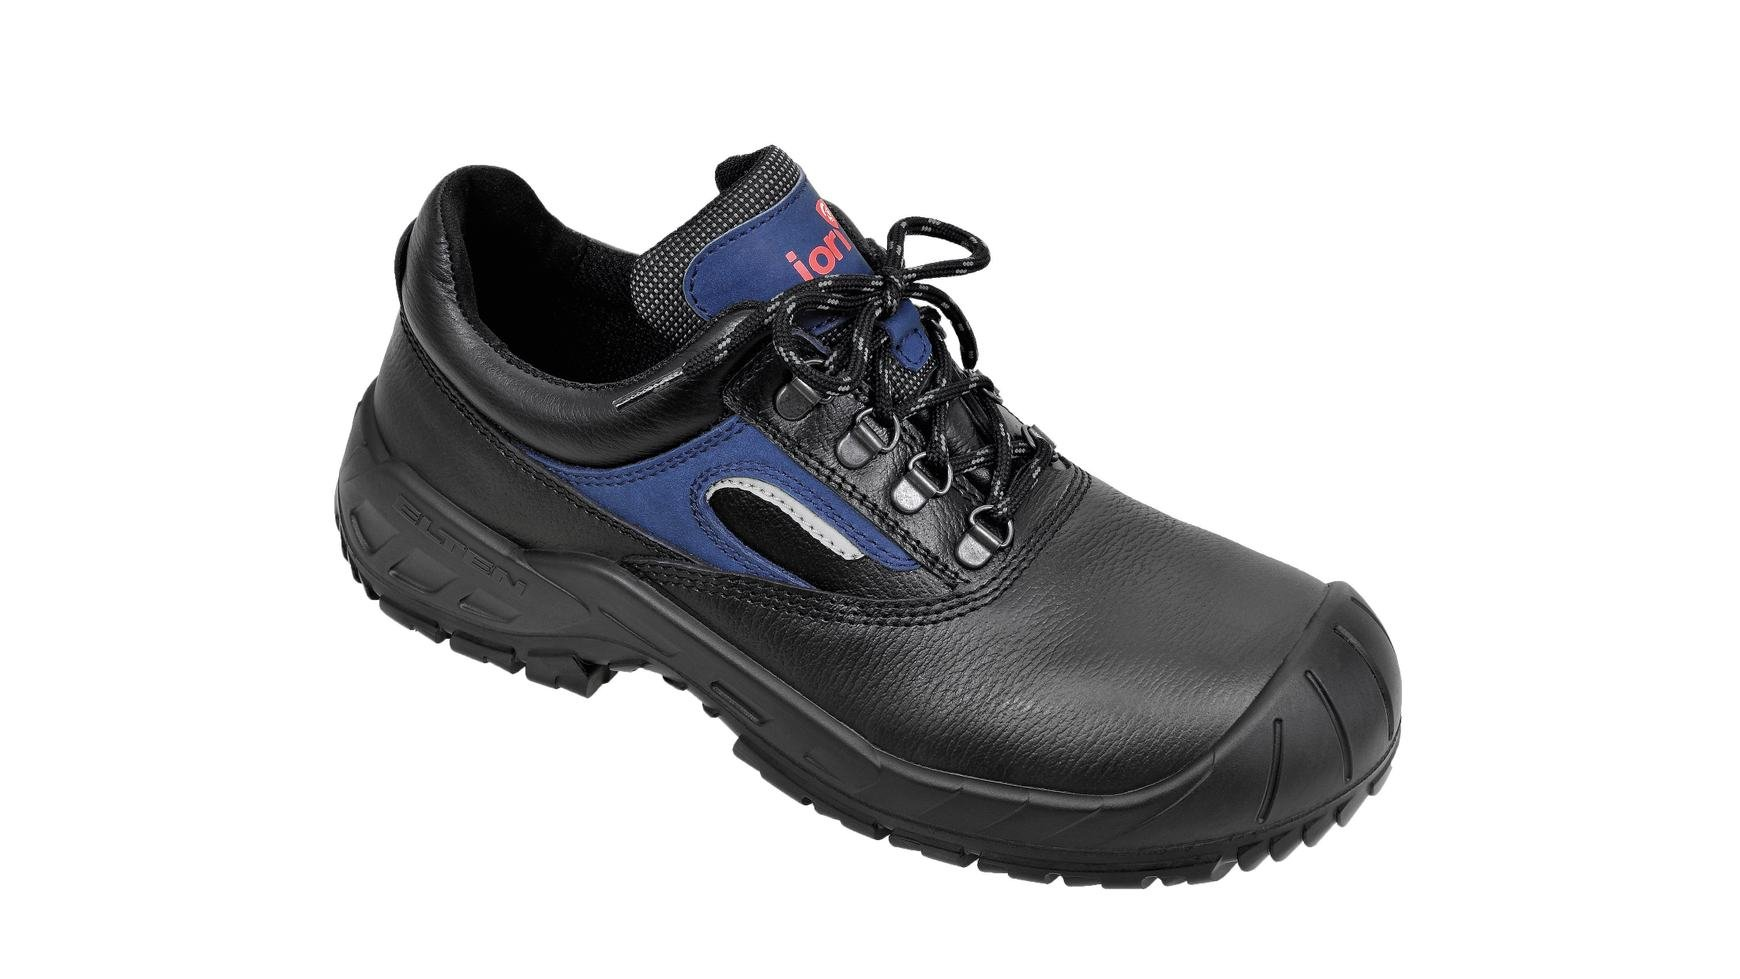 8cf5adba5fc53 Safety Shoes For Men